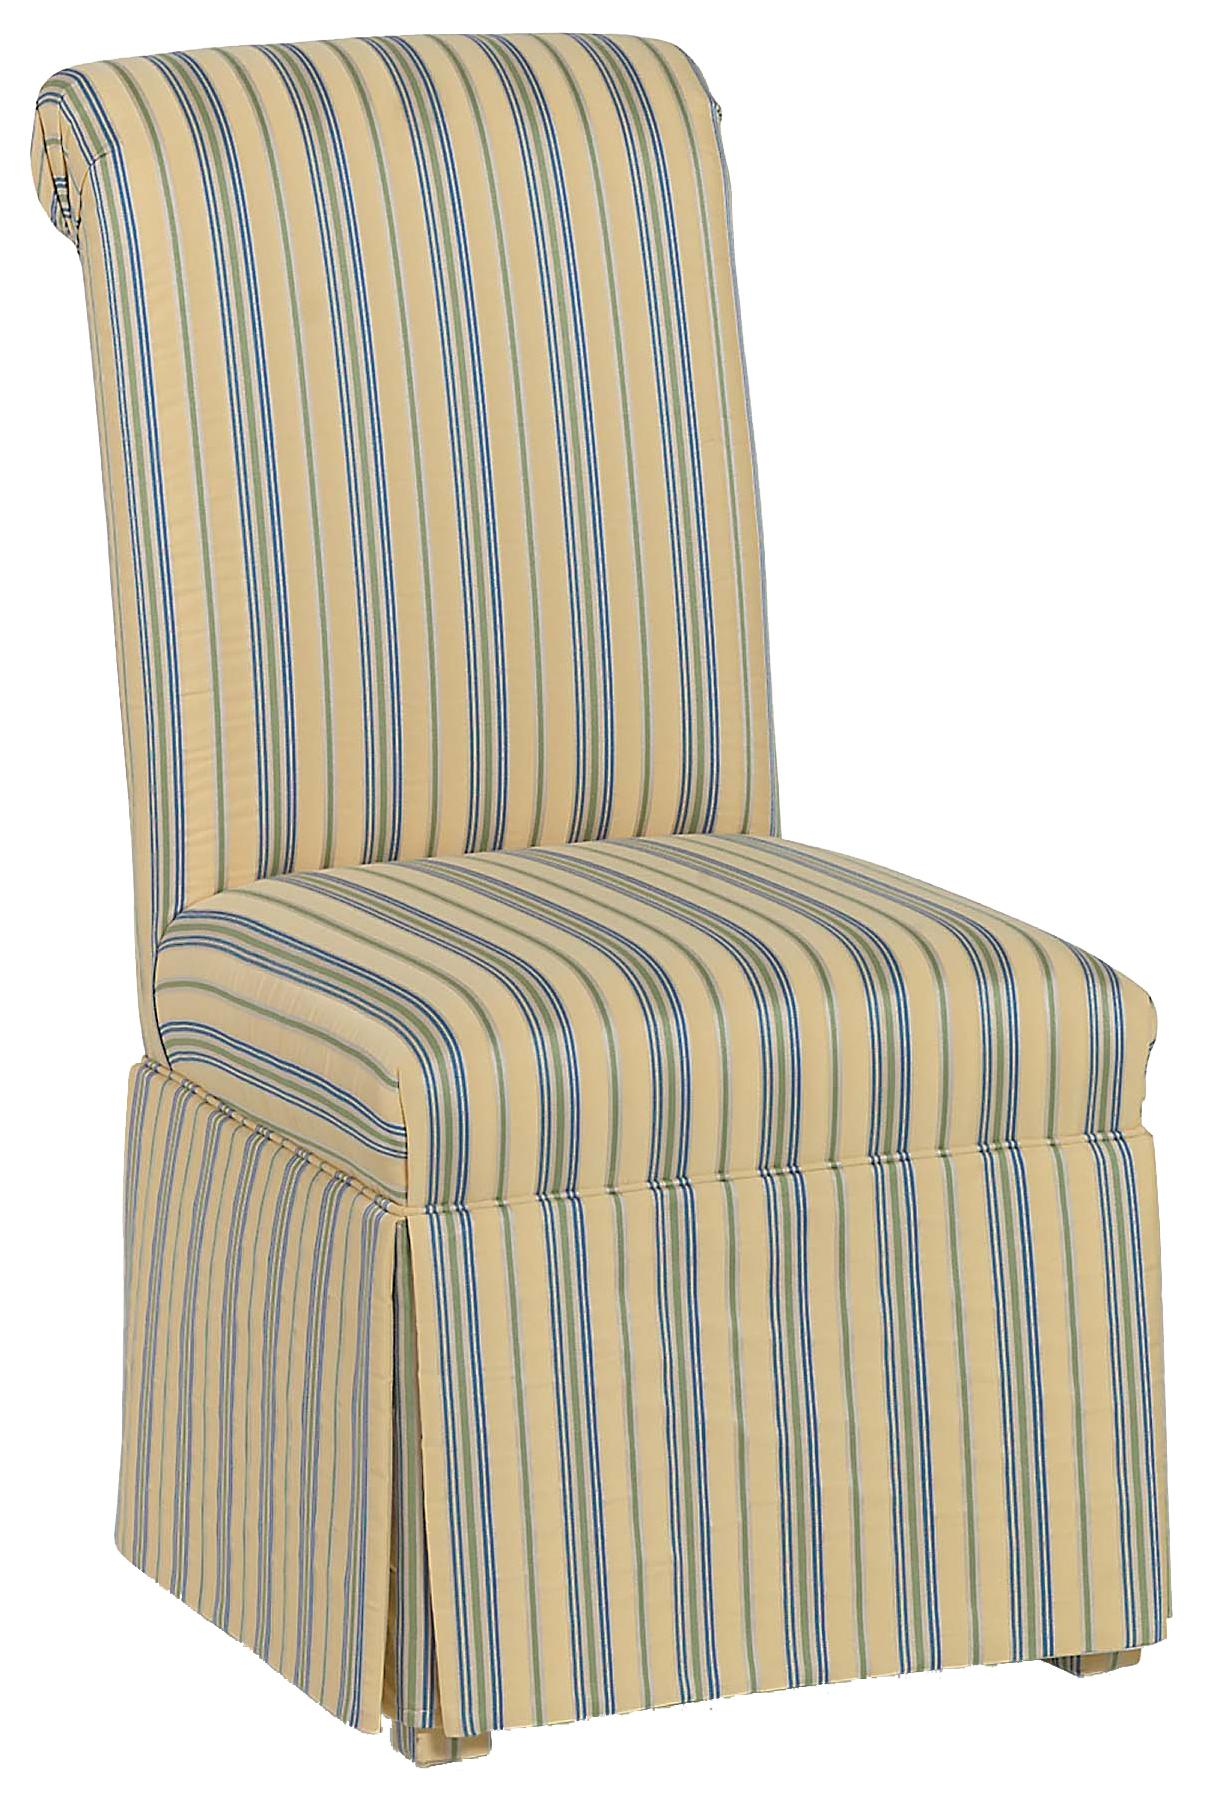 Fairfield Chairs Rolled Back Skirted Chair - Item Number: 6032-01